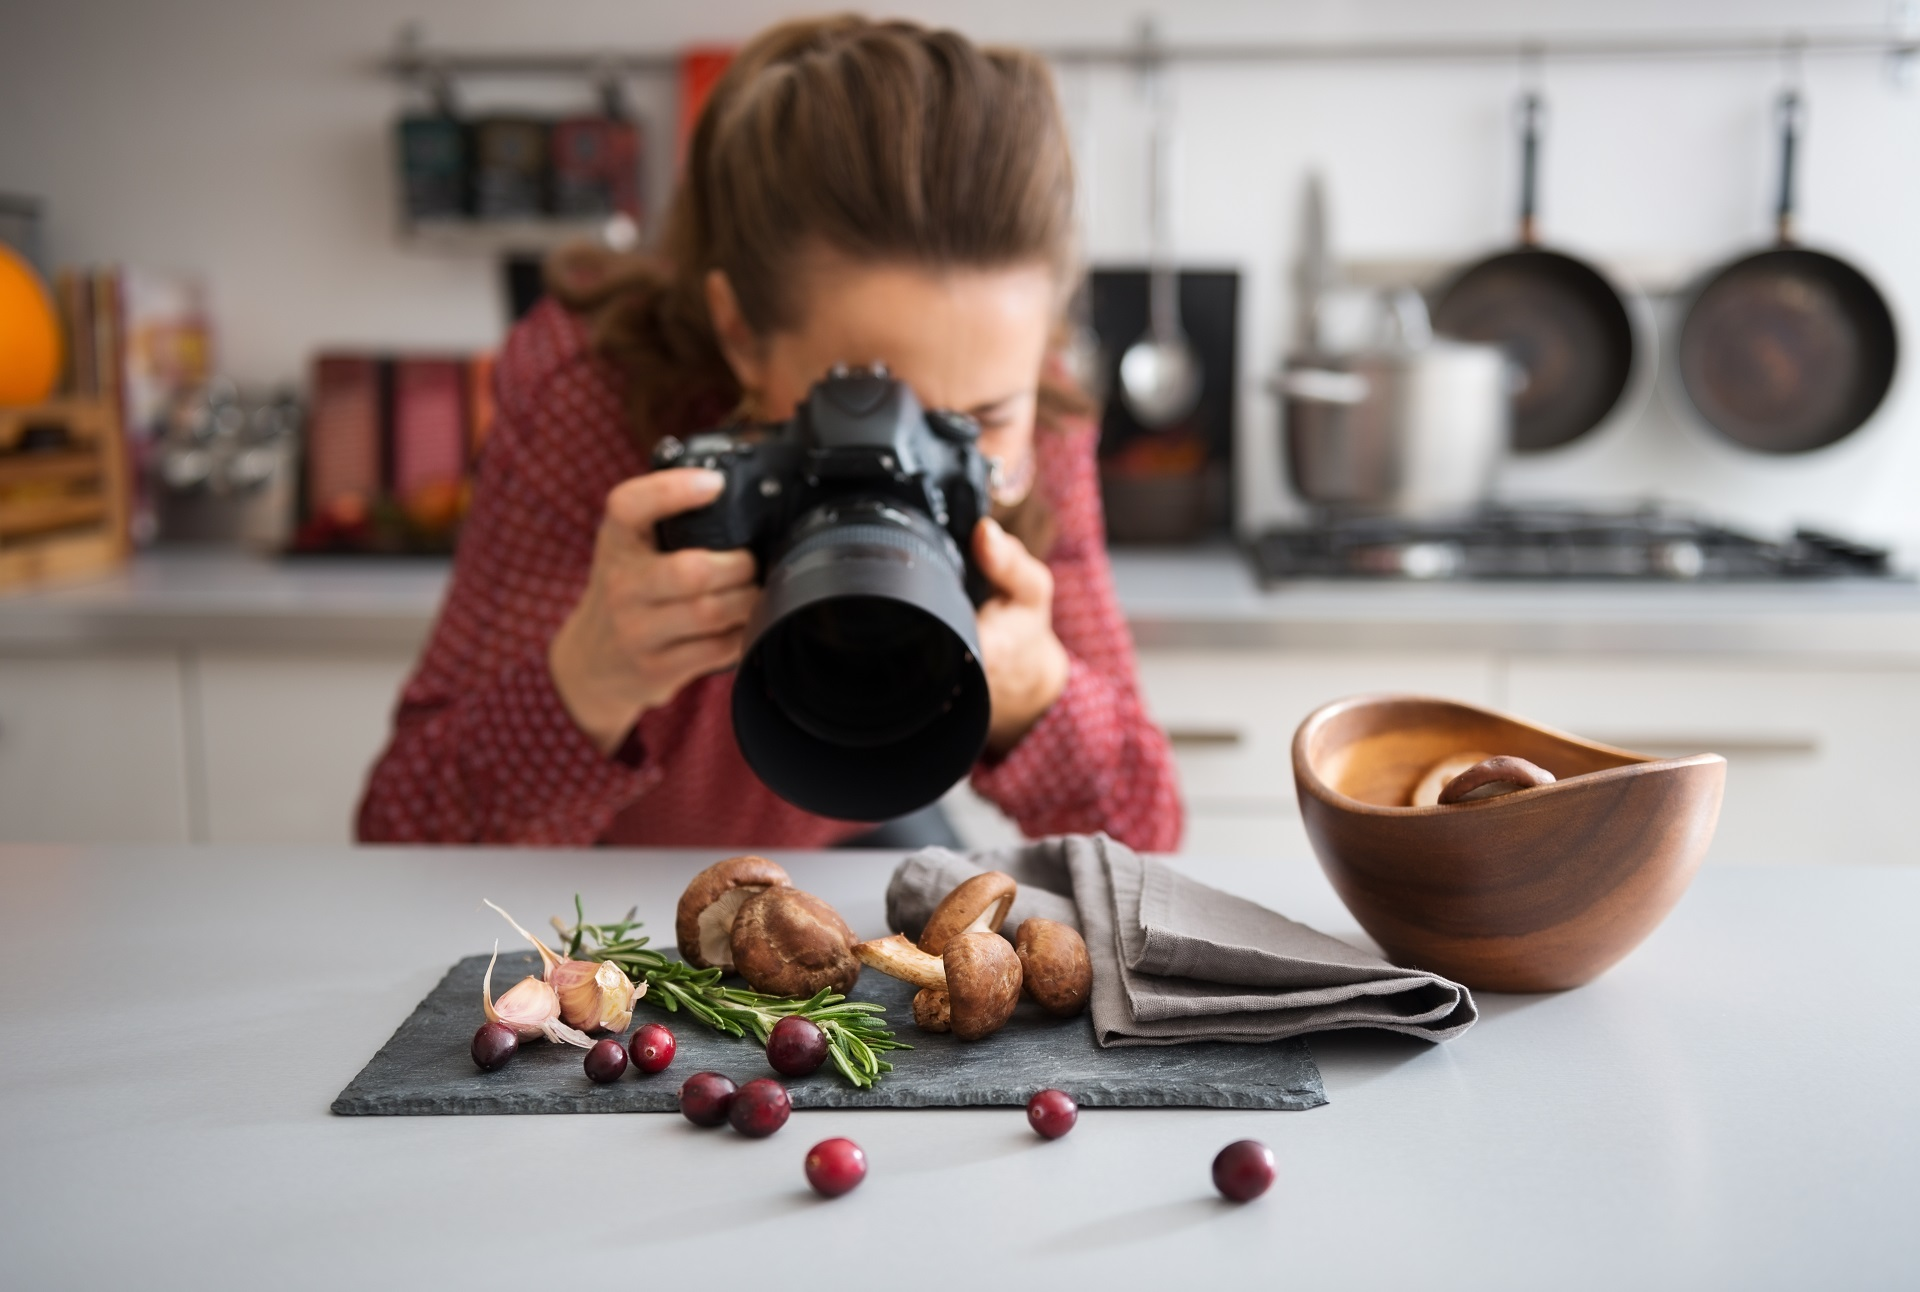 Product photography at home.